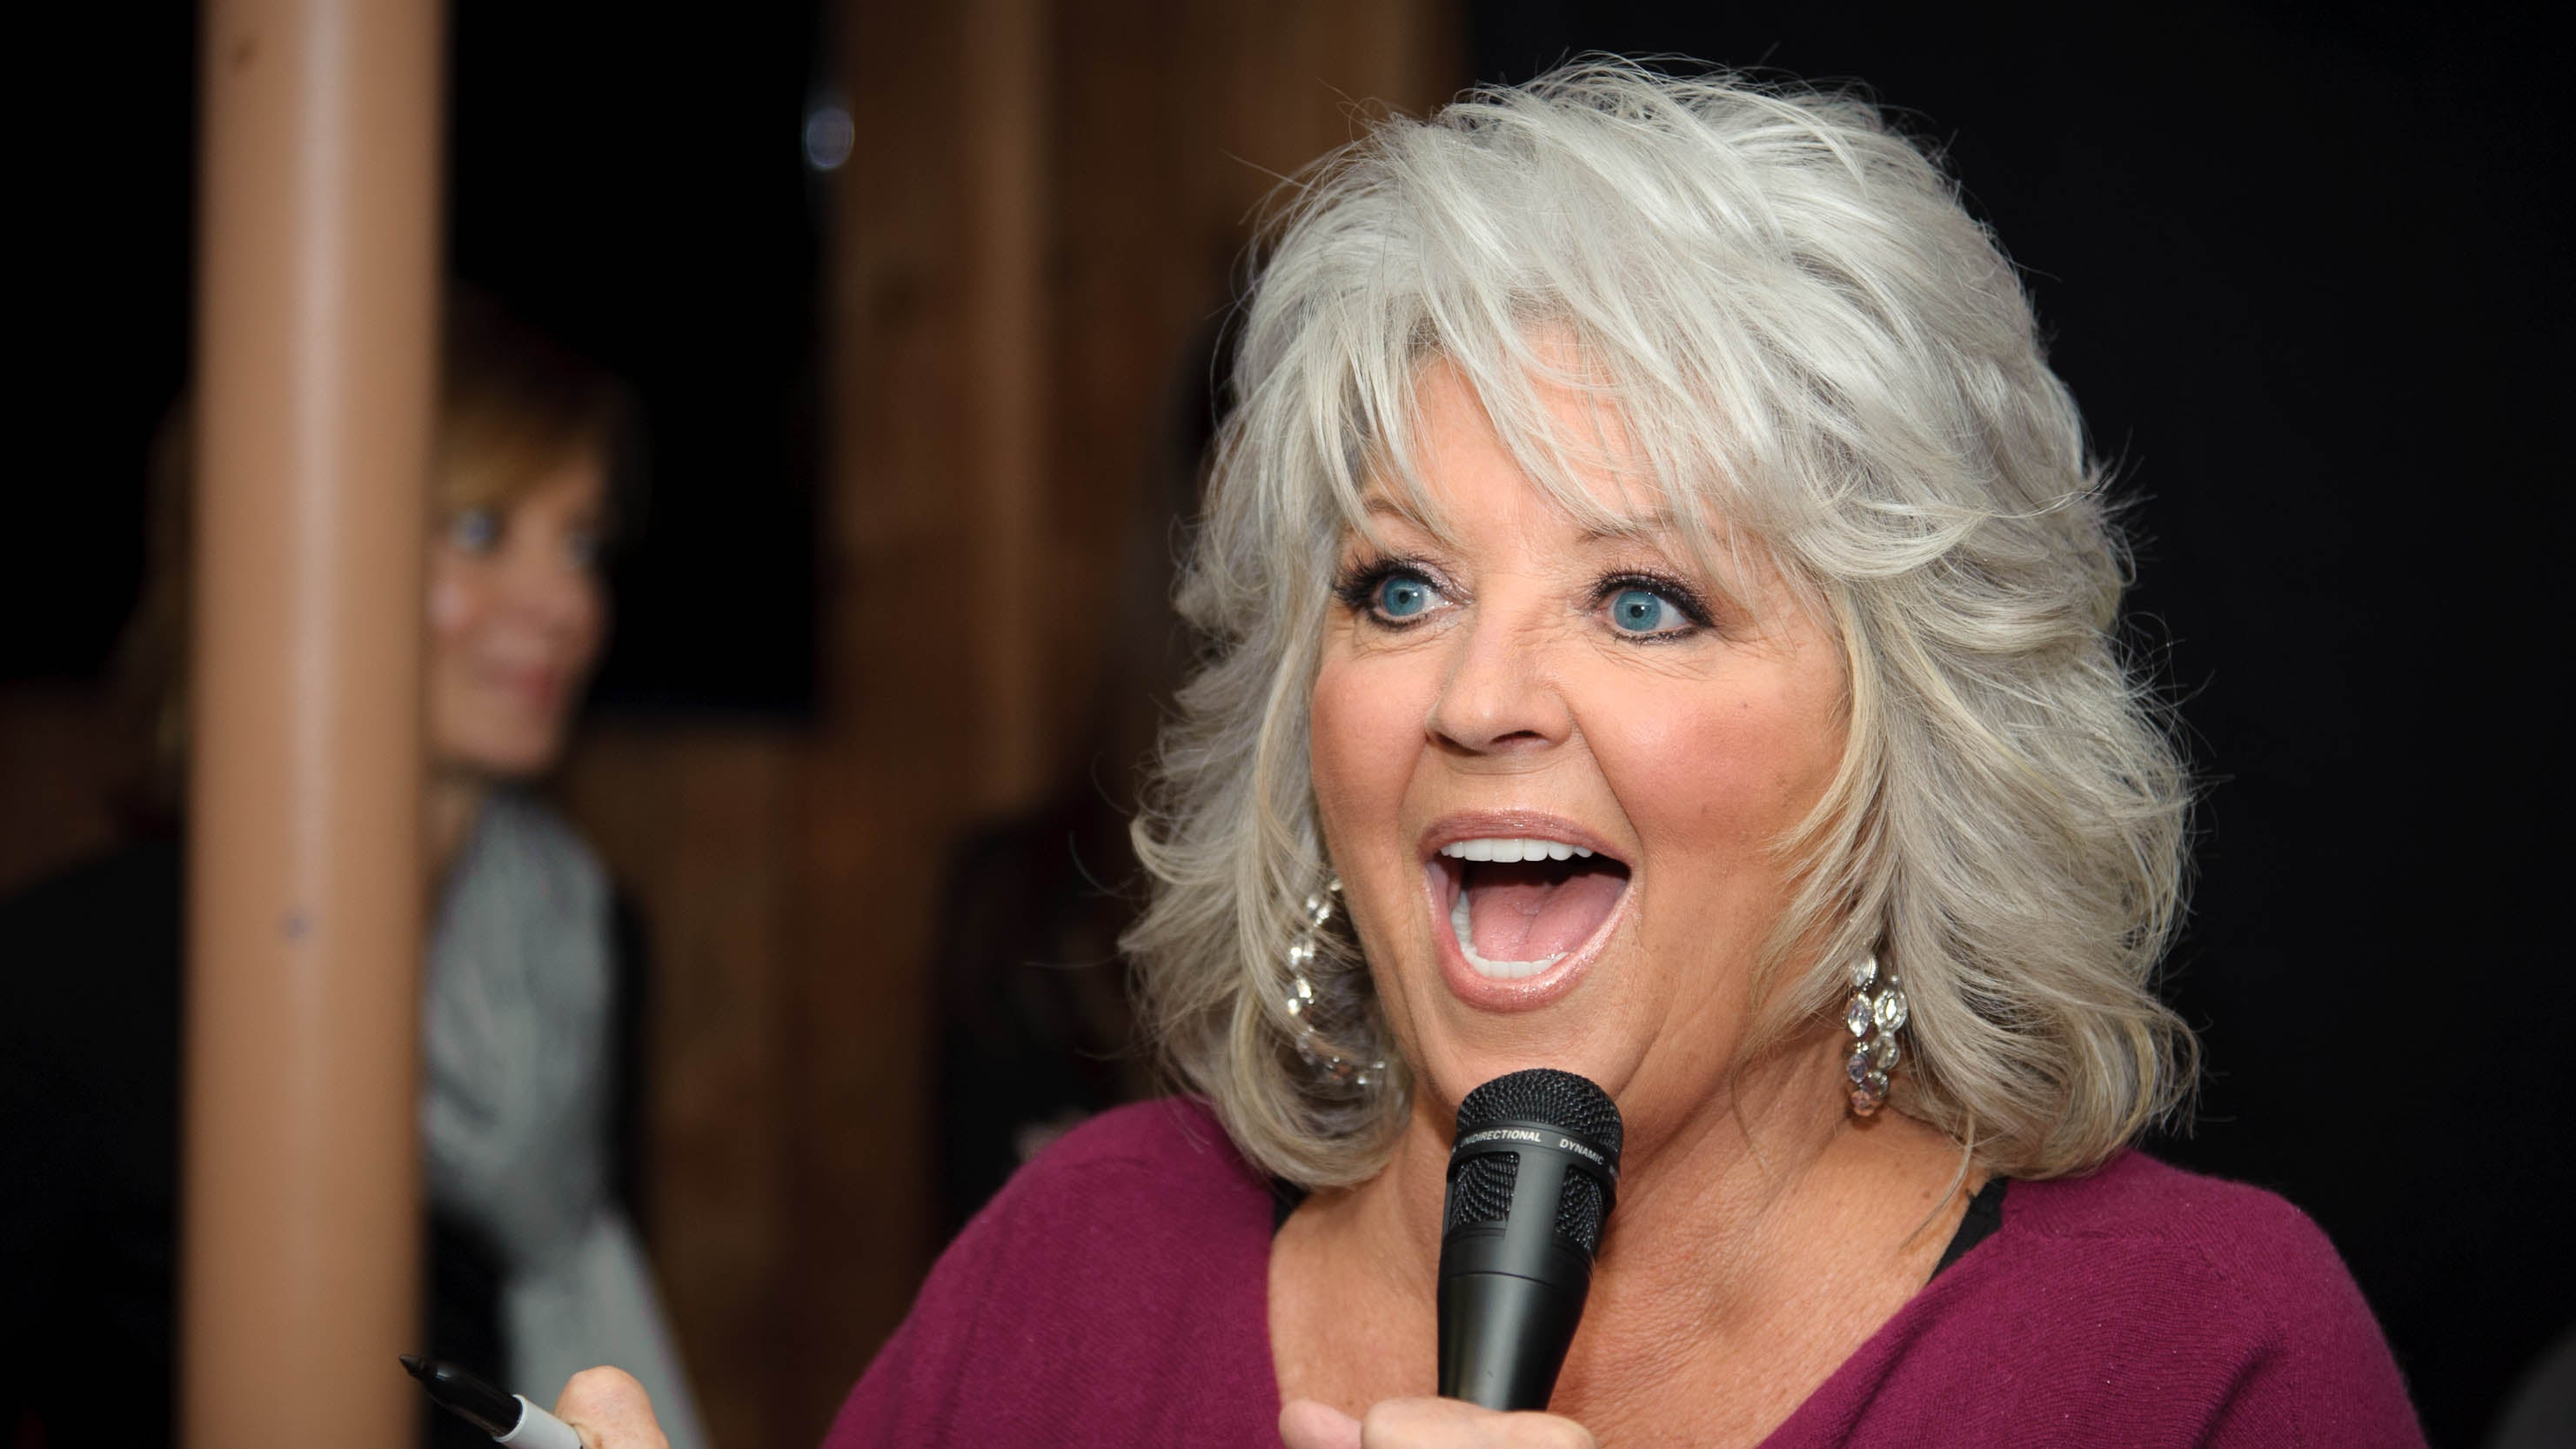 Paula Deen Has Dropped 30 Pounds Since Diabetes Diagnosis